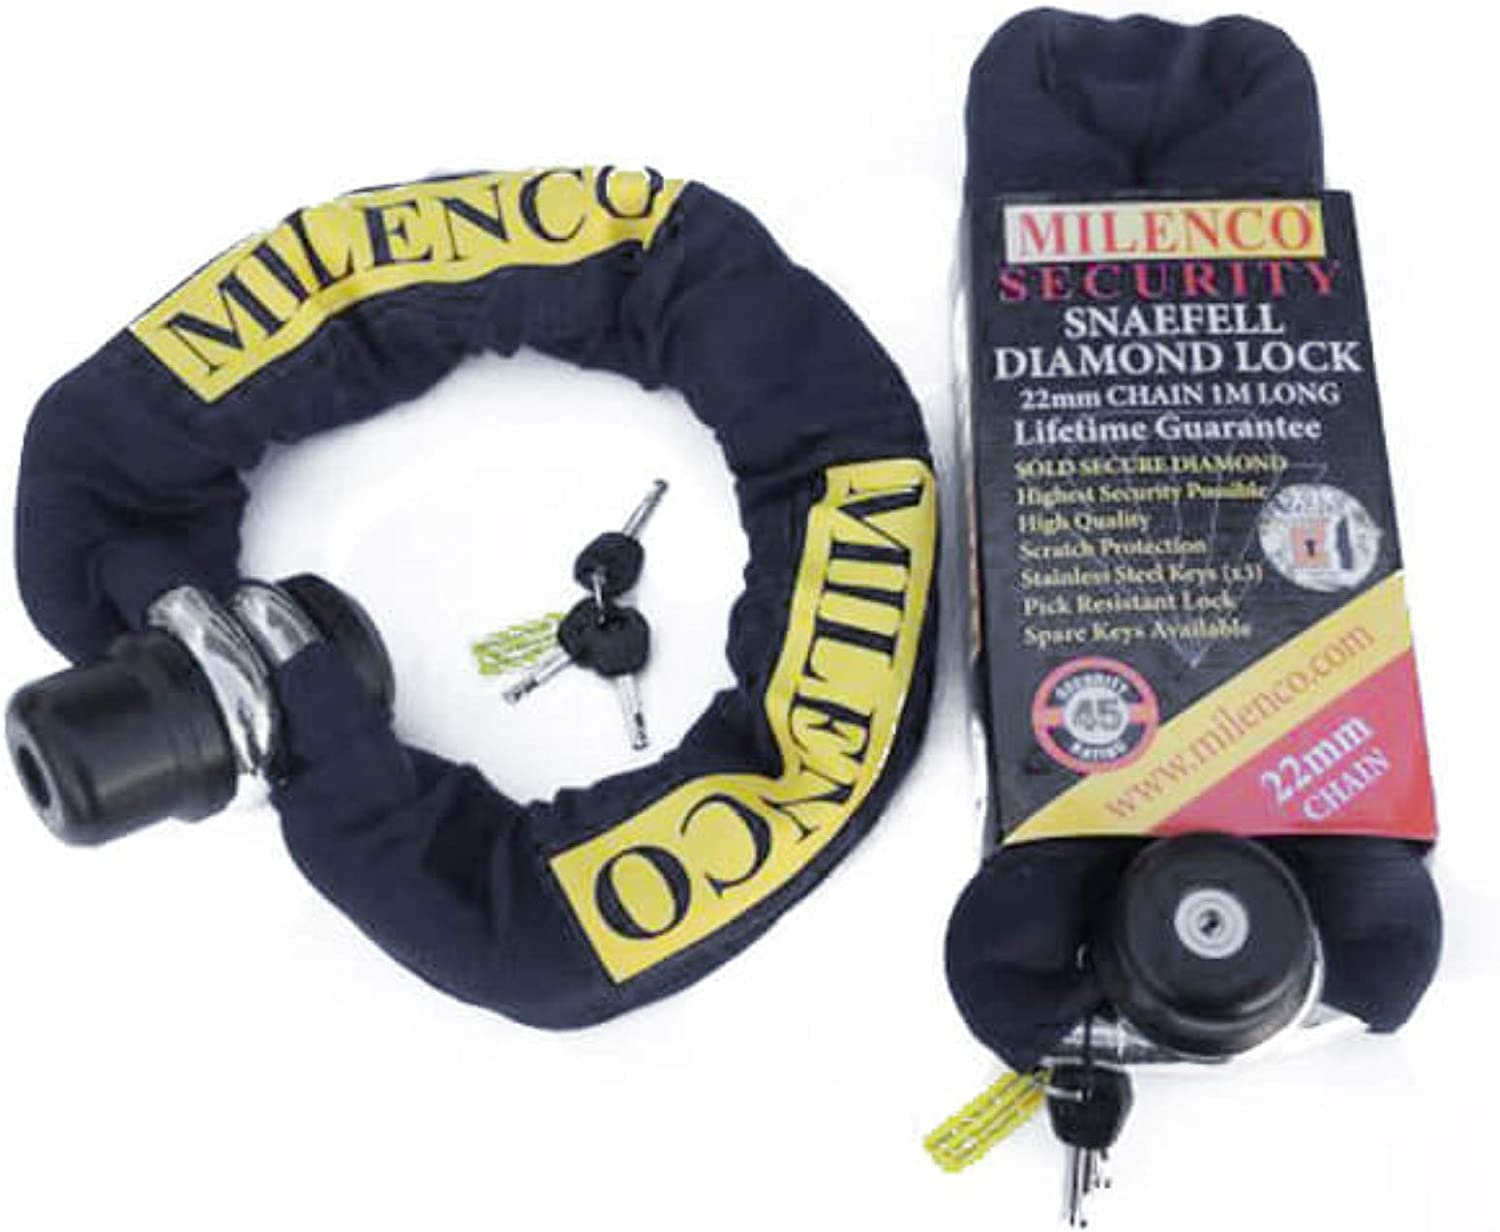 Milenco Snaefell Diamond Motorbike Motorcycle Scooter Lock /& 1M Chain